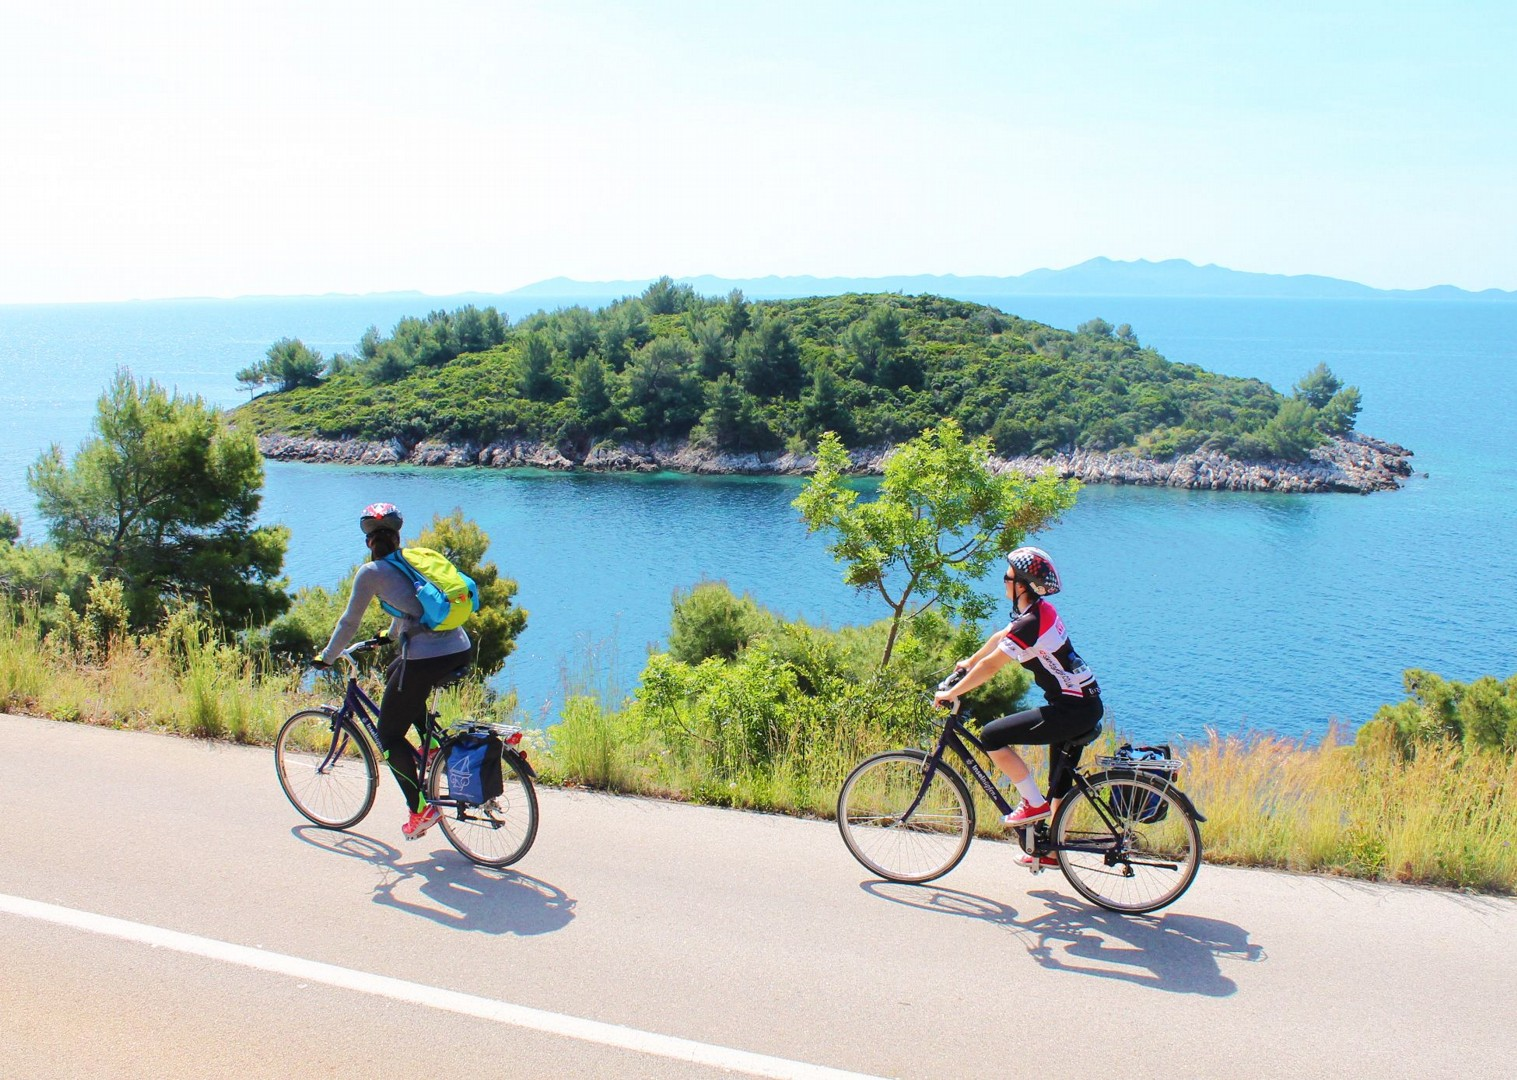 bike-and-boat-holiday-southern-dalmatia.jpg - Croatia - Southern Dalmatia - Bike and Boat Holiday - Leisure Cycling